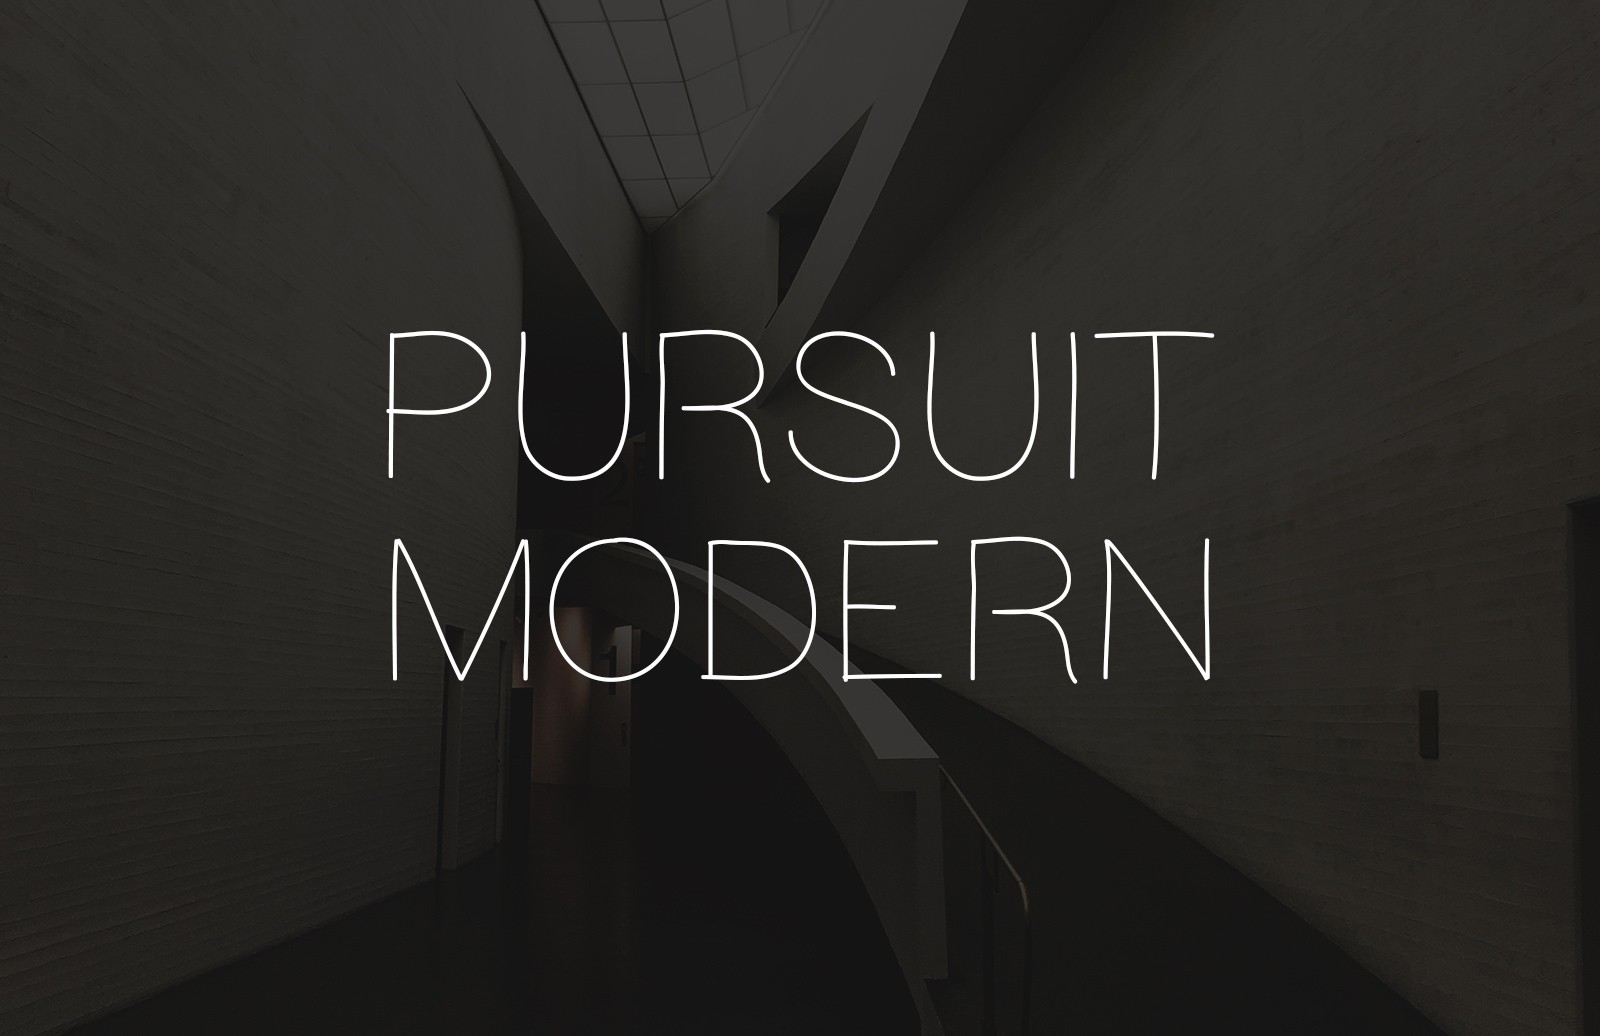 Pursuit Modern - Light Hand Drawn Font